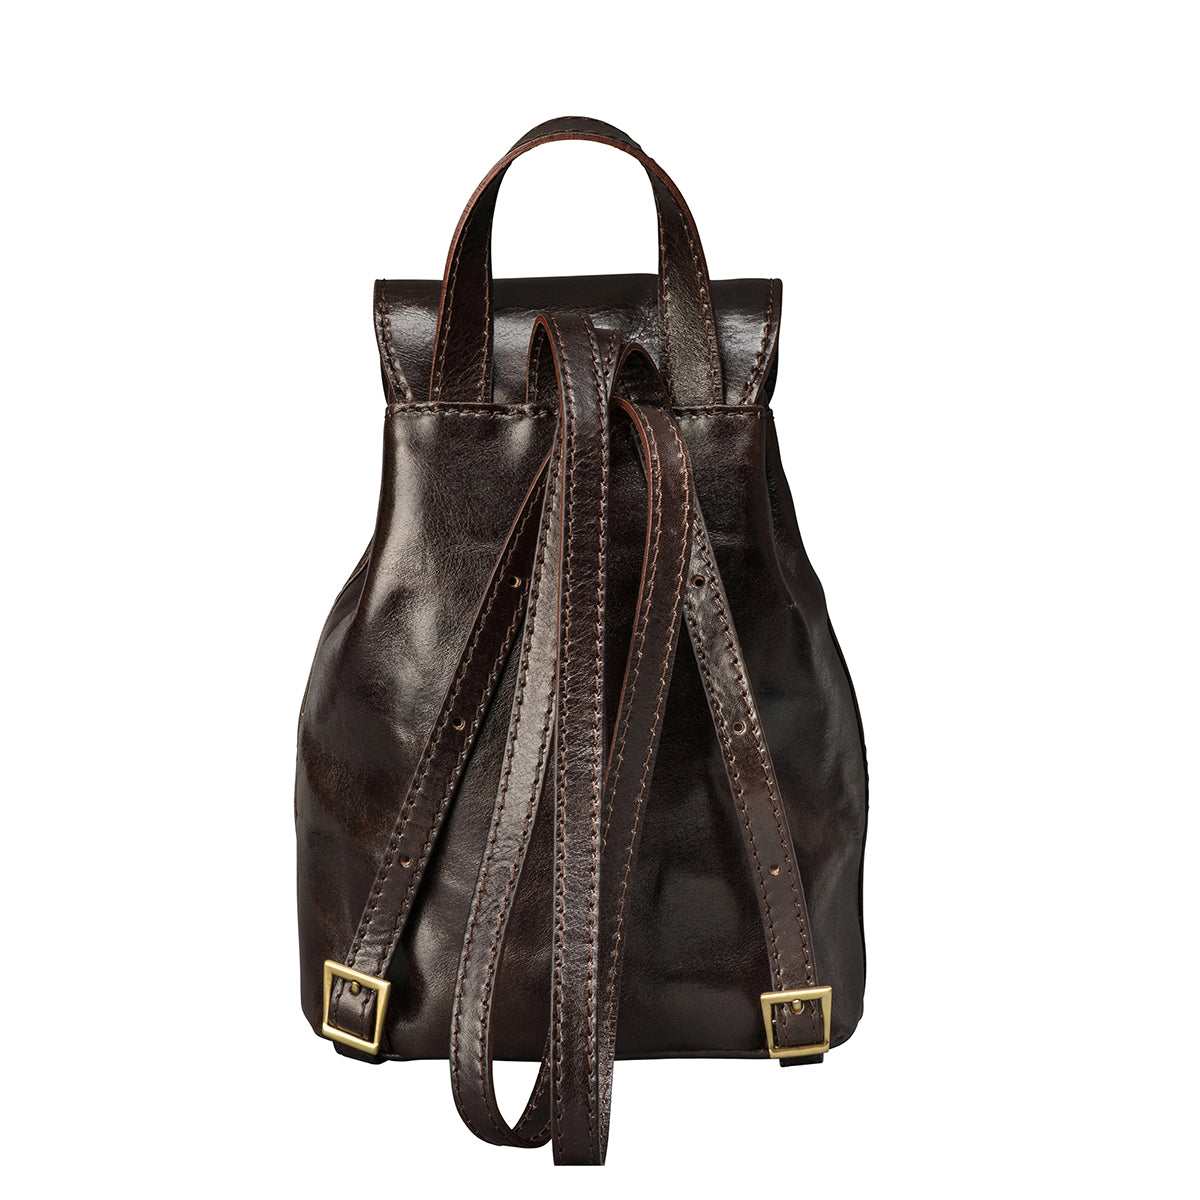 Image 4 of the 'Popolo' Compact Dark Chocolate Veg-Tanned Leather Shoulder Bag